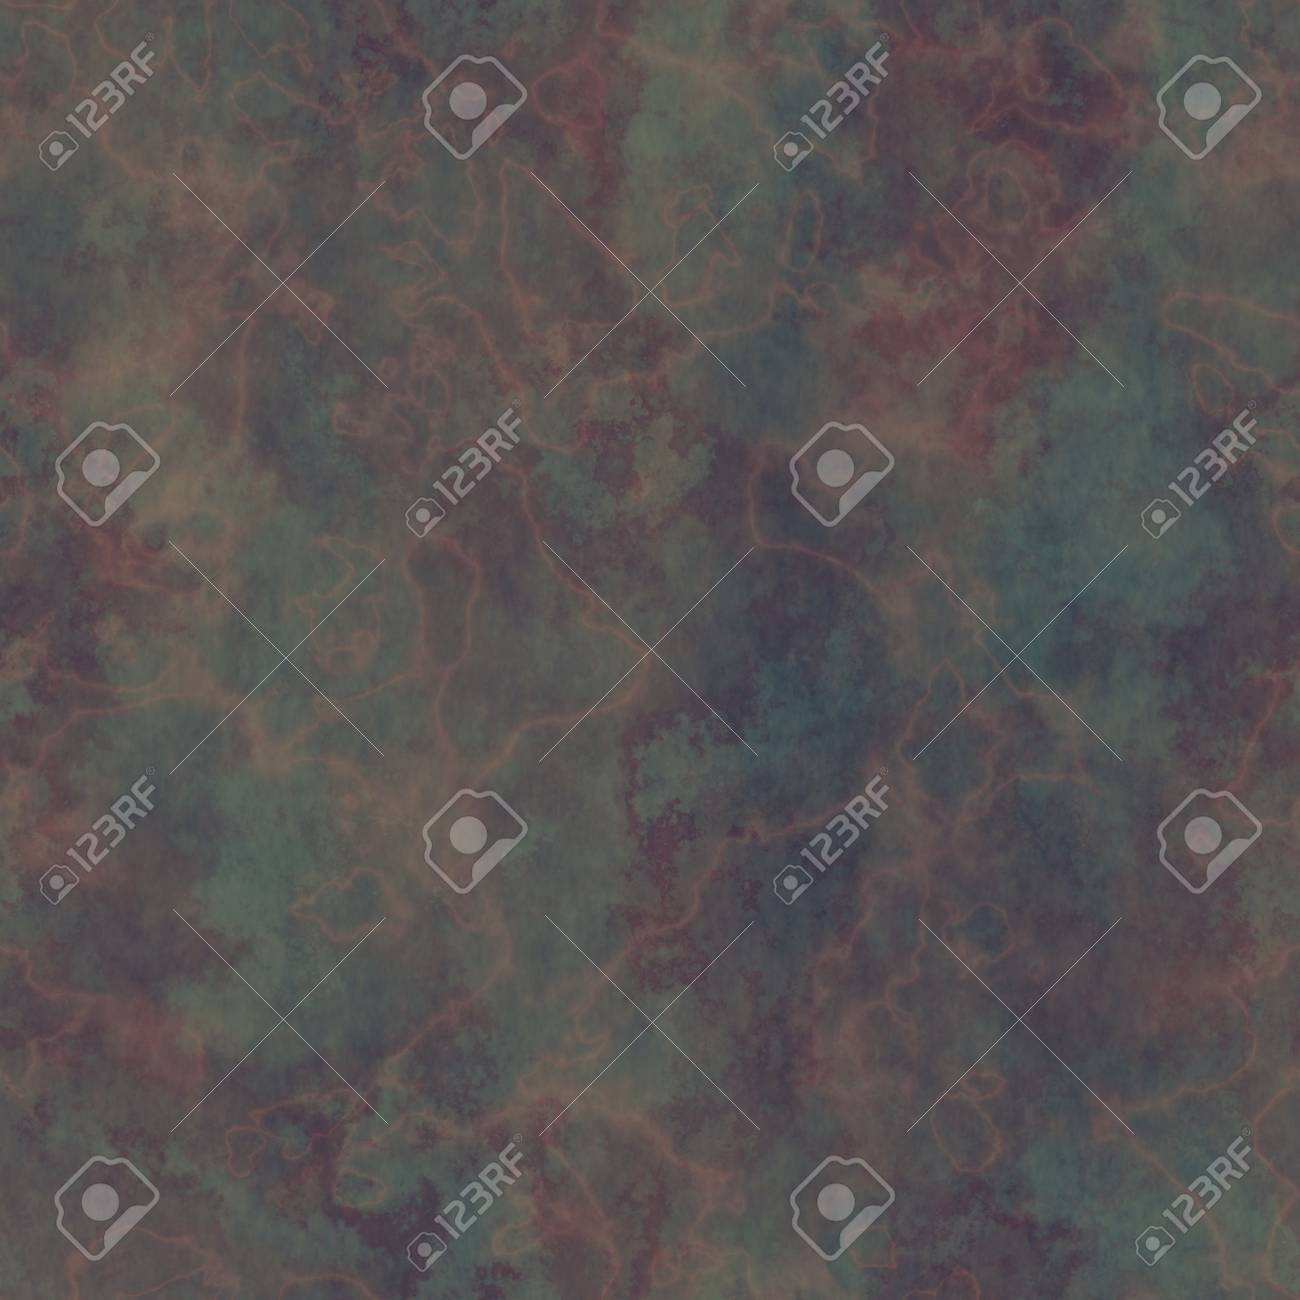 Marble material texture seamless background tile pattern Stock Photo - 5361097